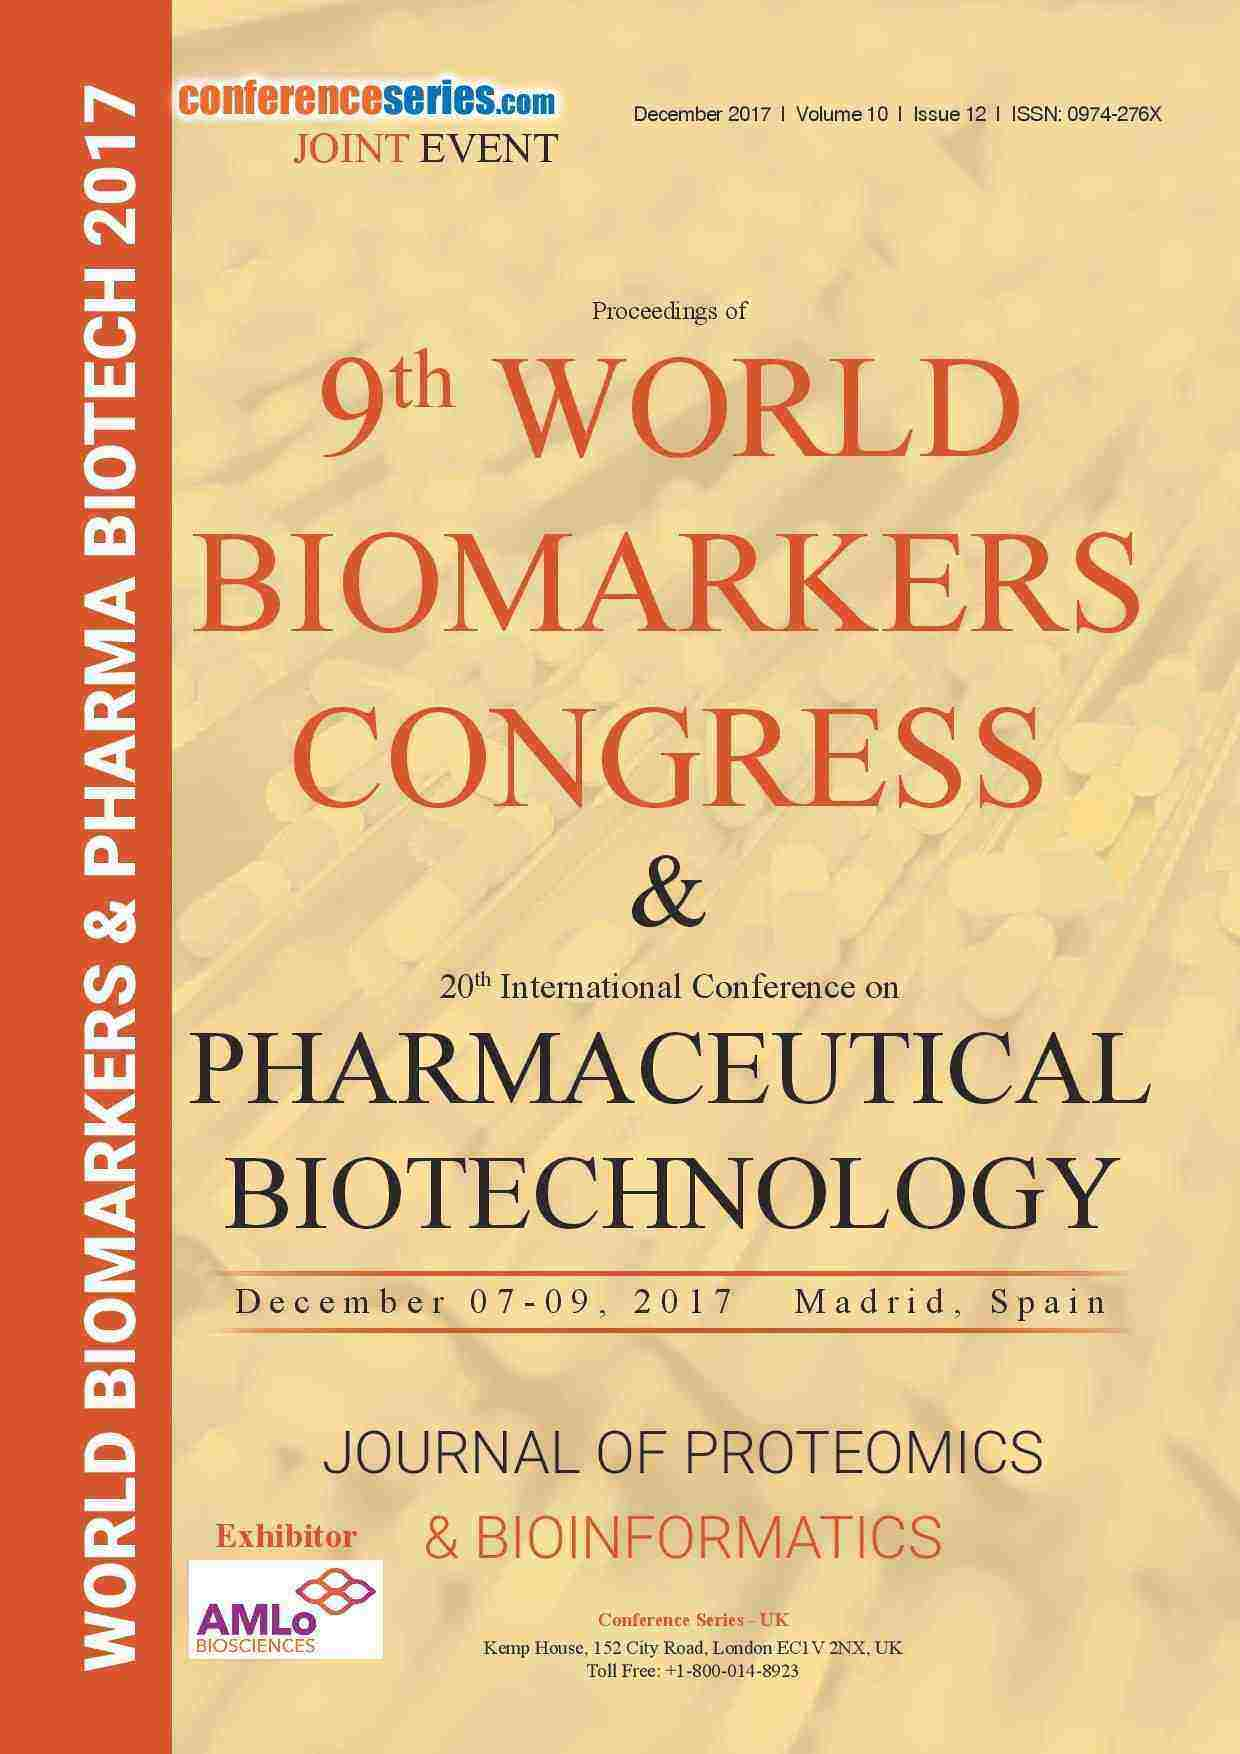 Biomarkers Congress 2017